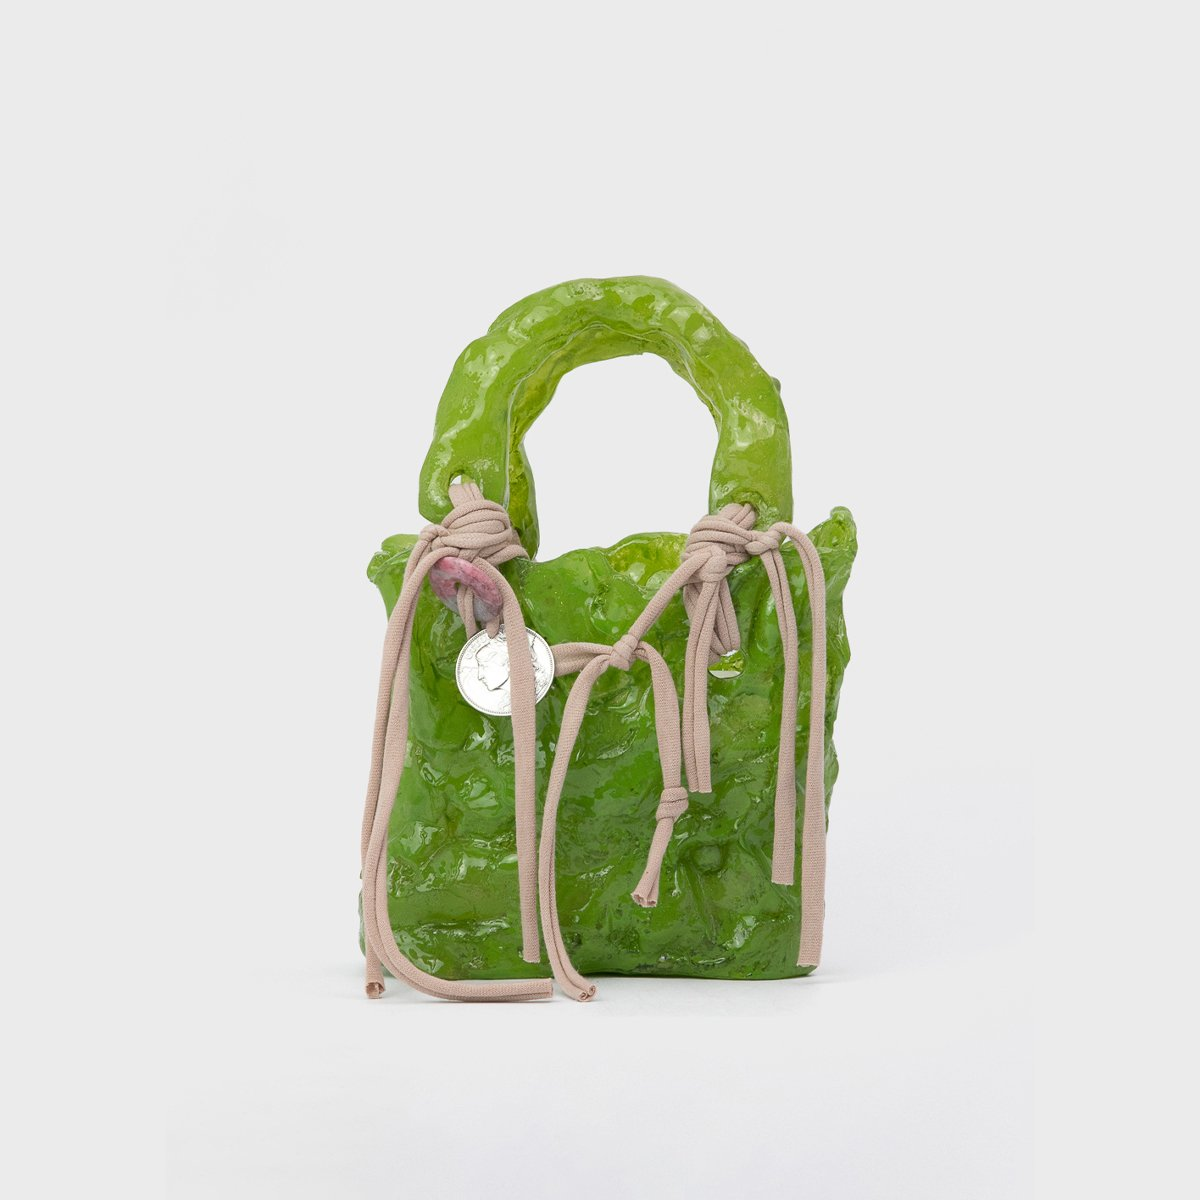 Ottolinger Handcrafted Green Otto Bag